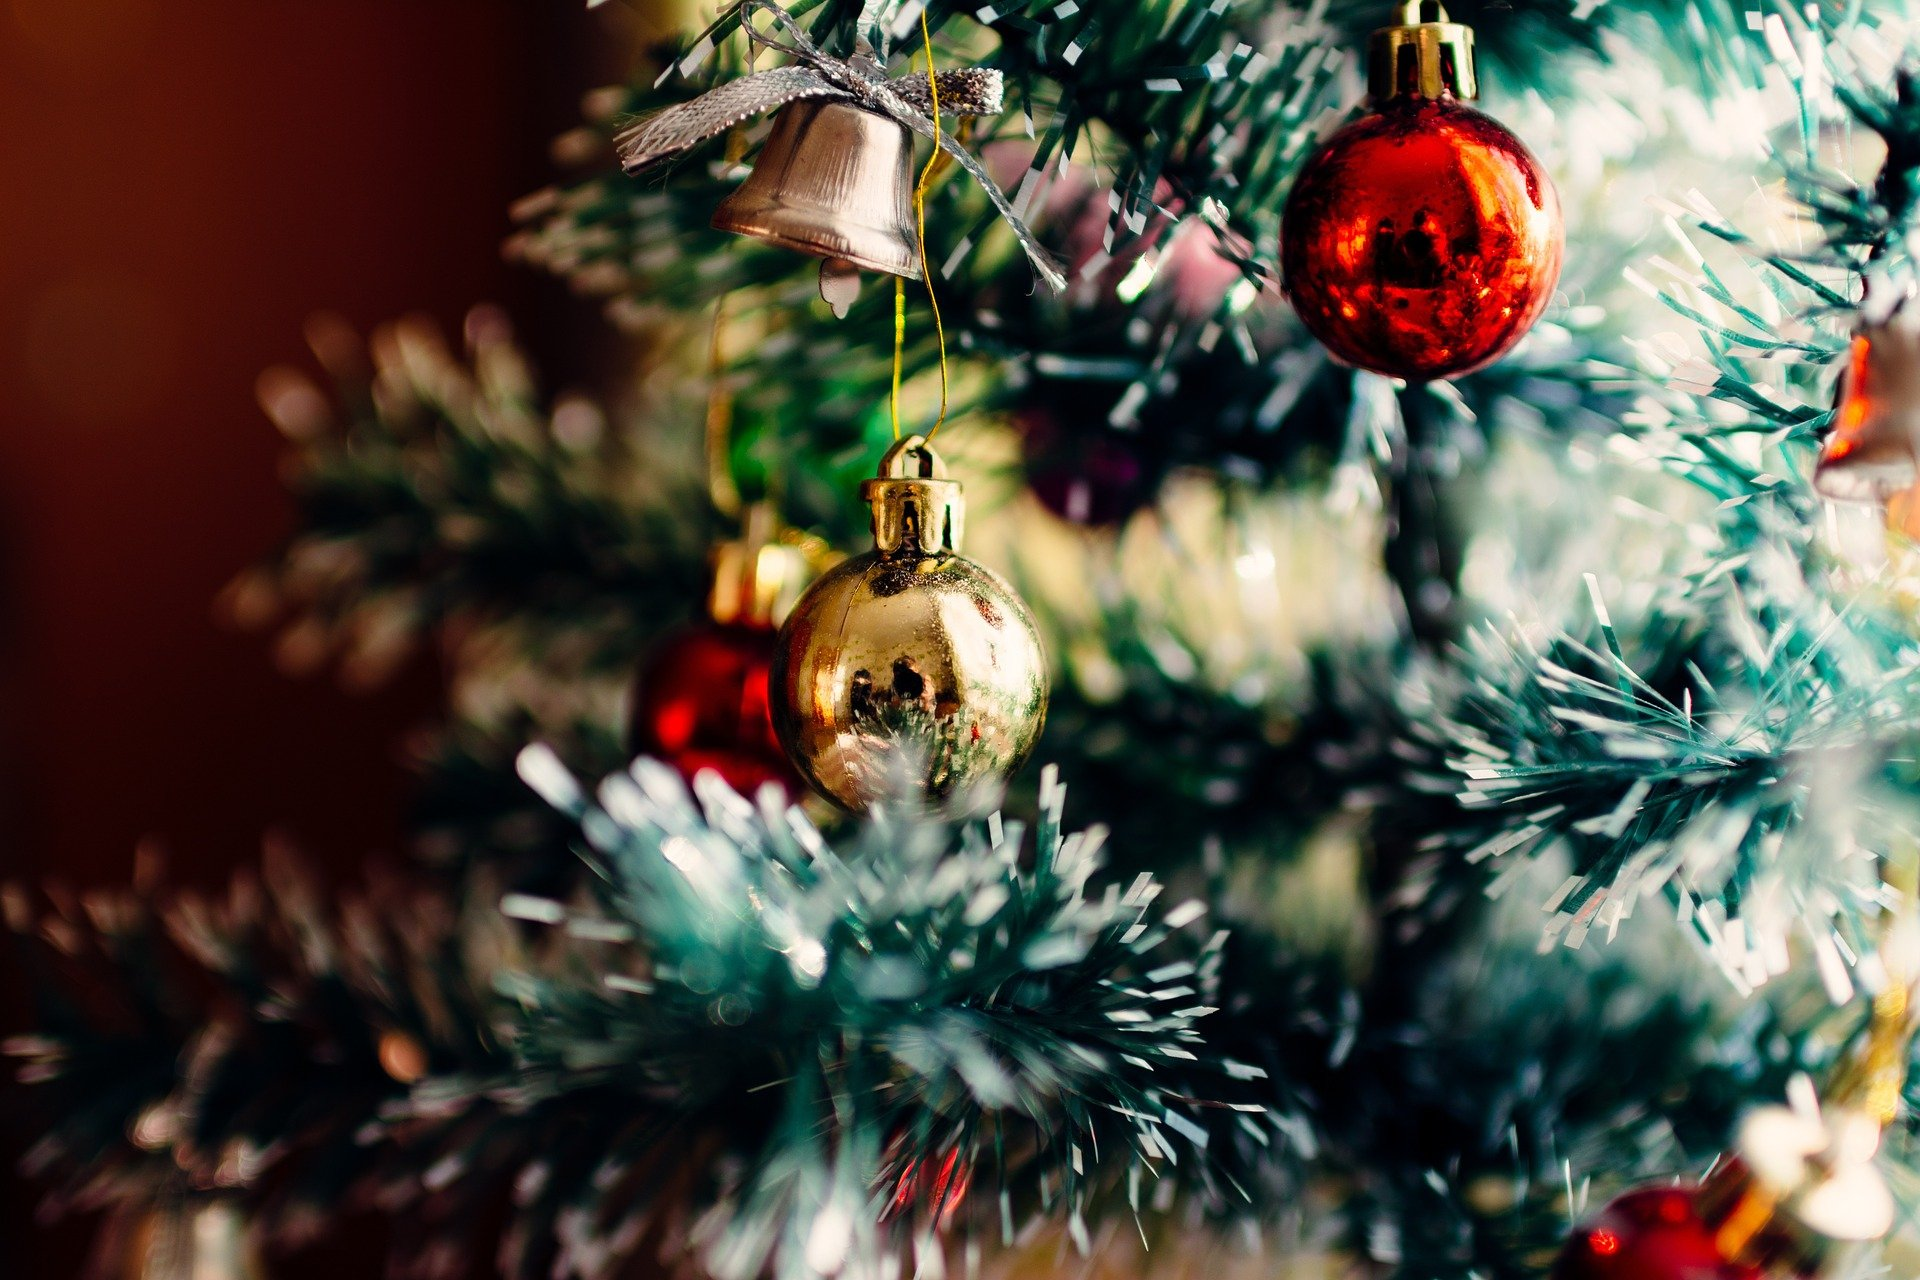 A close up of a christmas tree with baul bauls